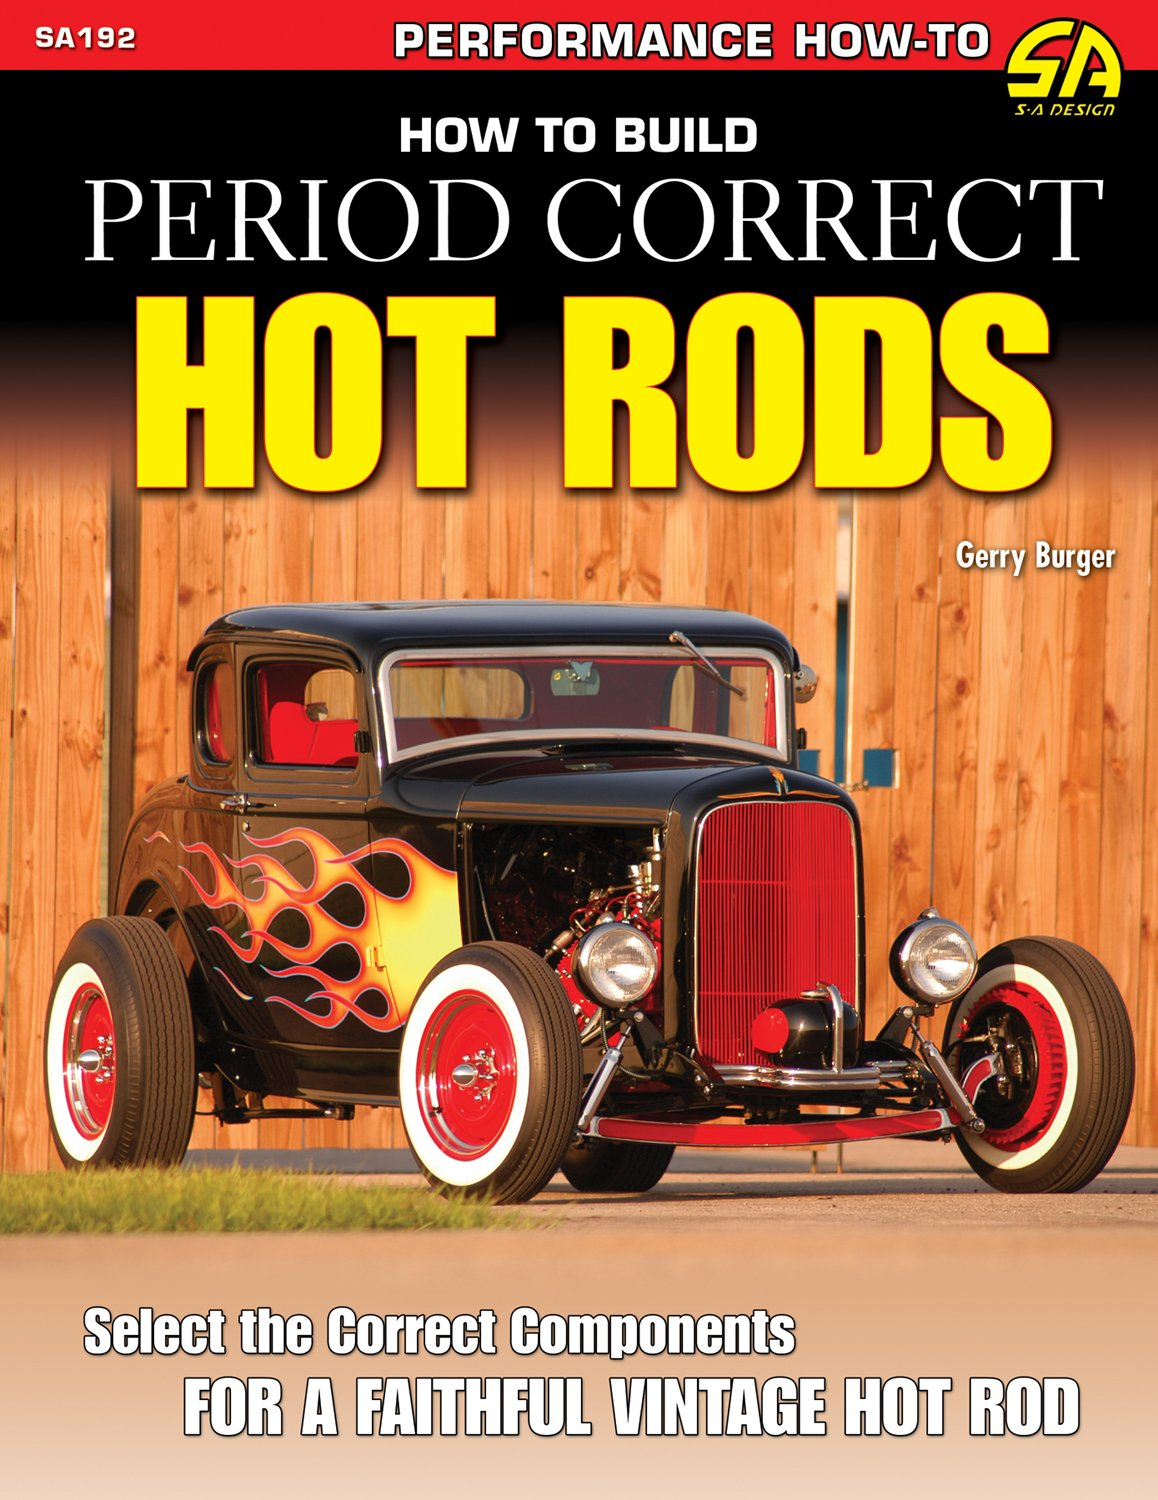 How to Build Period Correct Hot Rods (SA Design) (Performance How-To ...